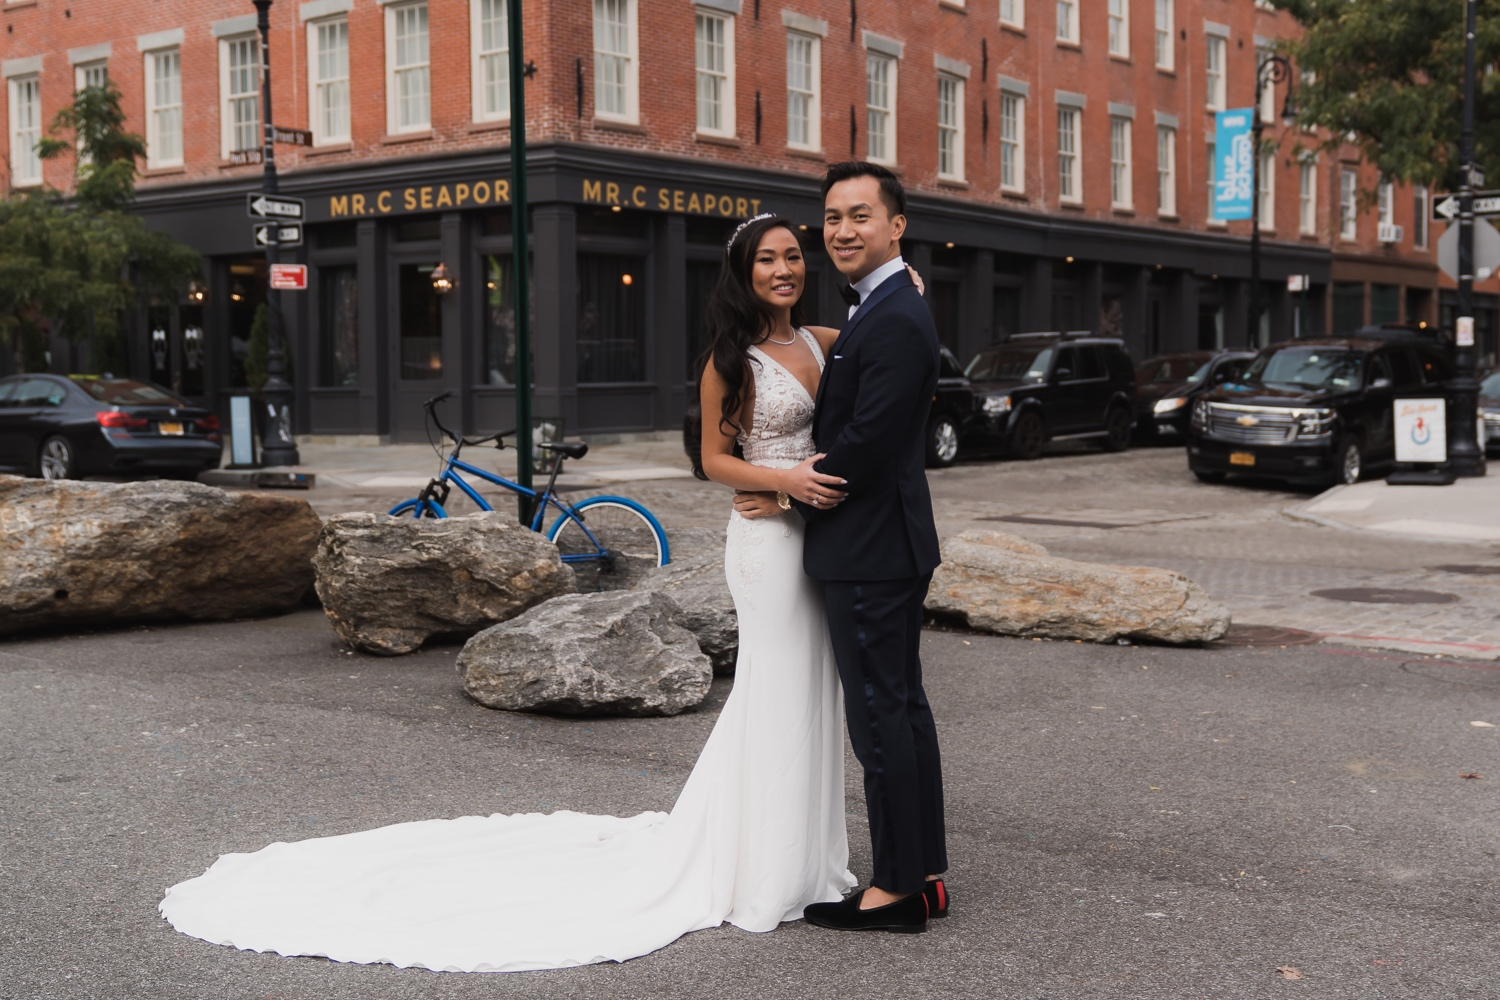 A first look session of a bride and a groom near Mr. C Seaport Hotel on a wedding day at Cipriani Wall Street. Wedding Dress by Pronovias